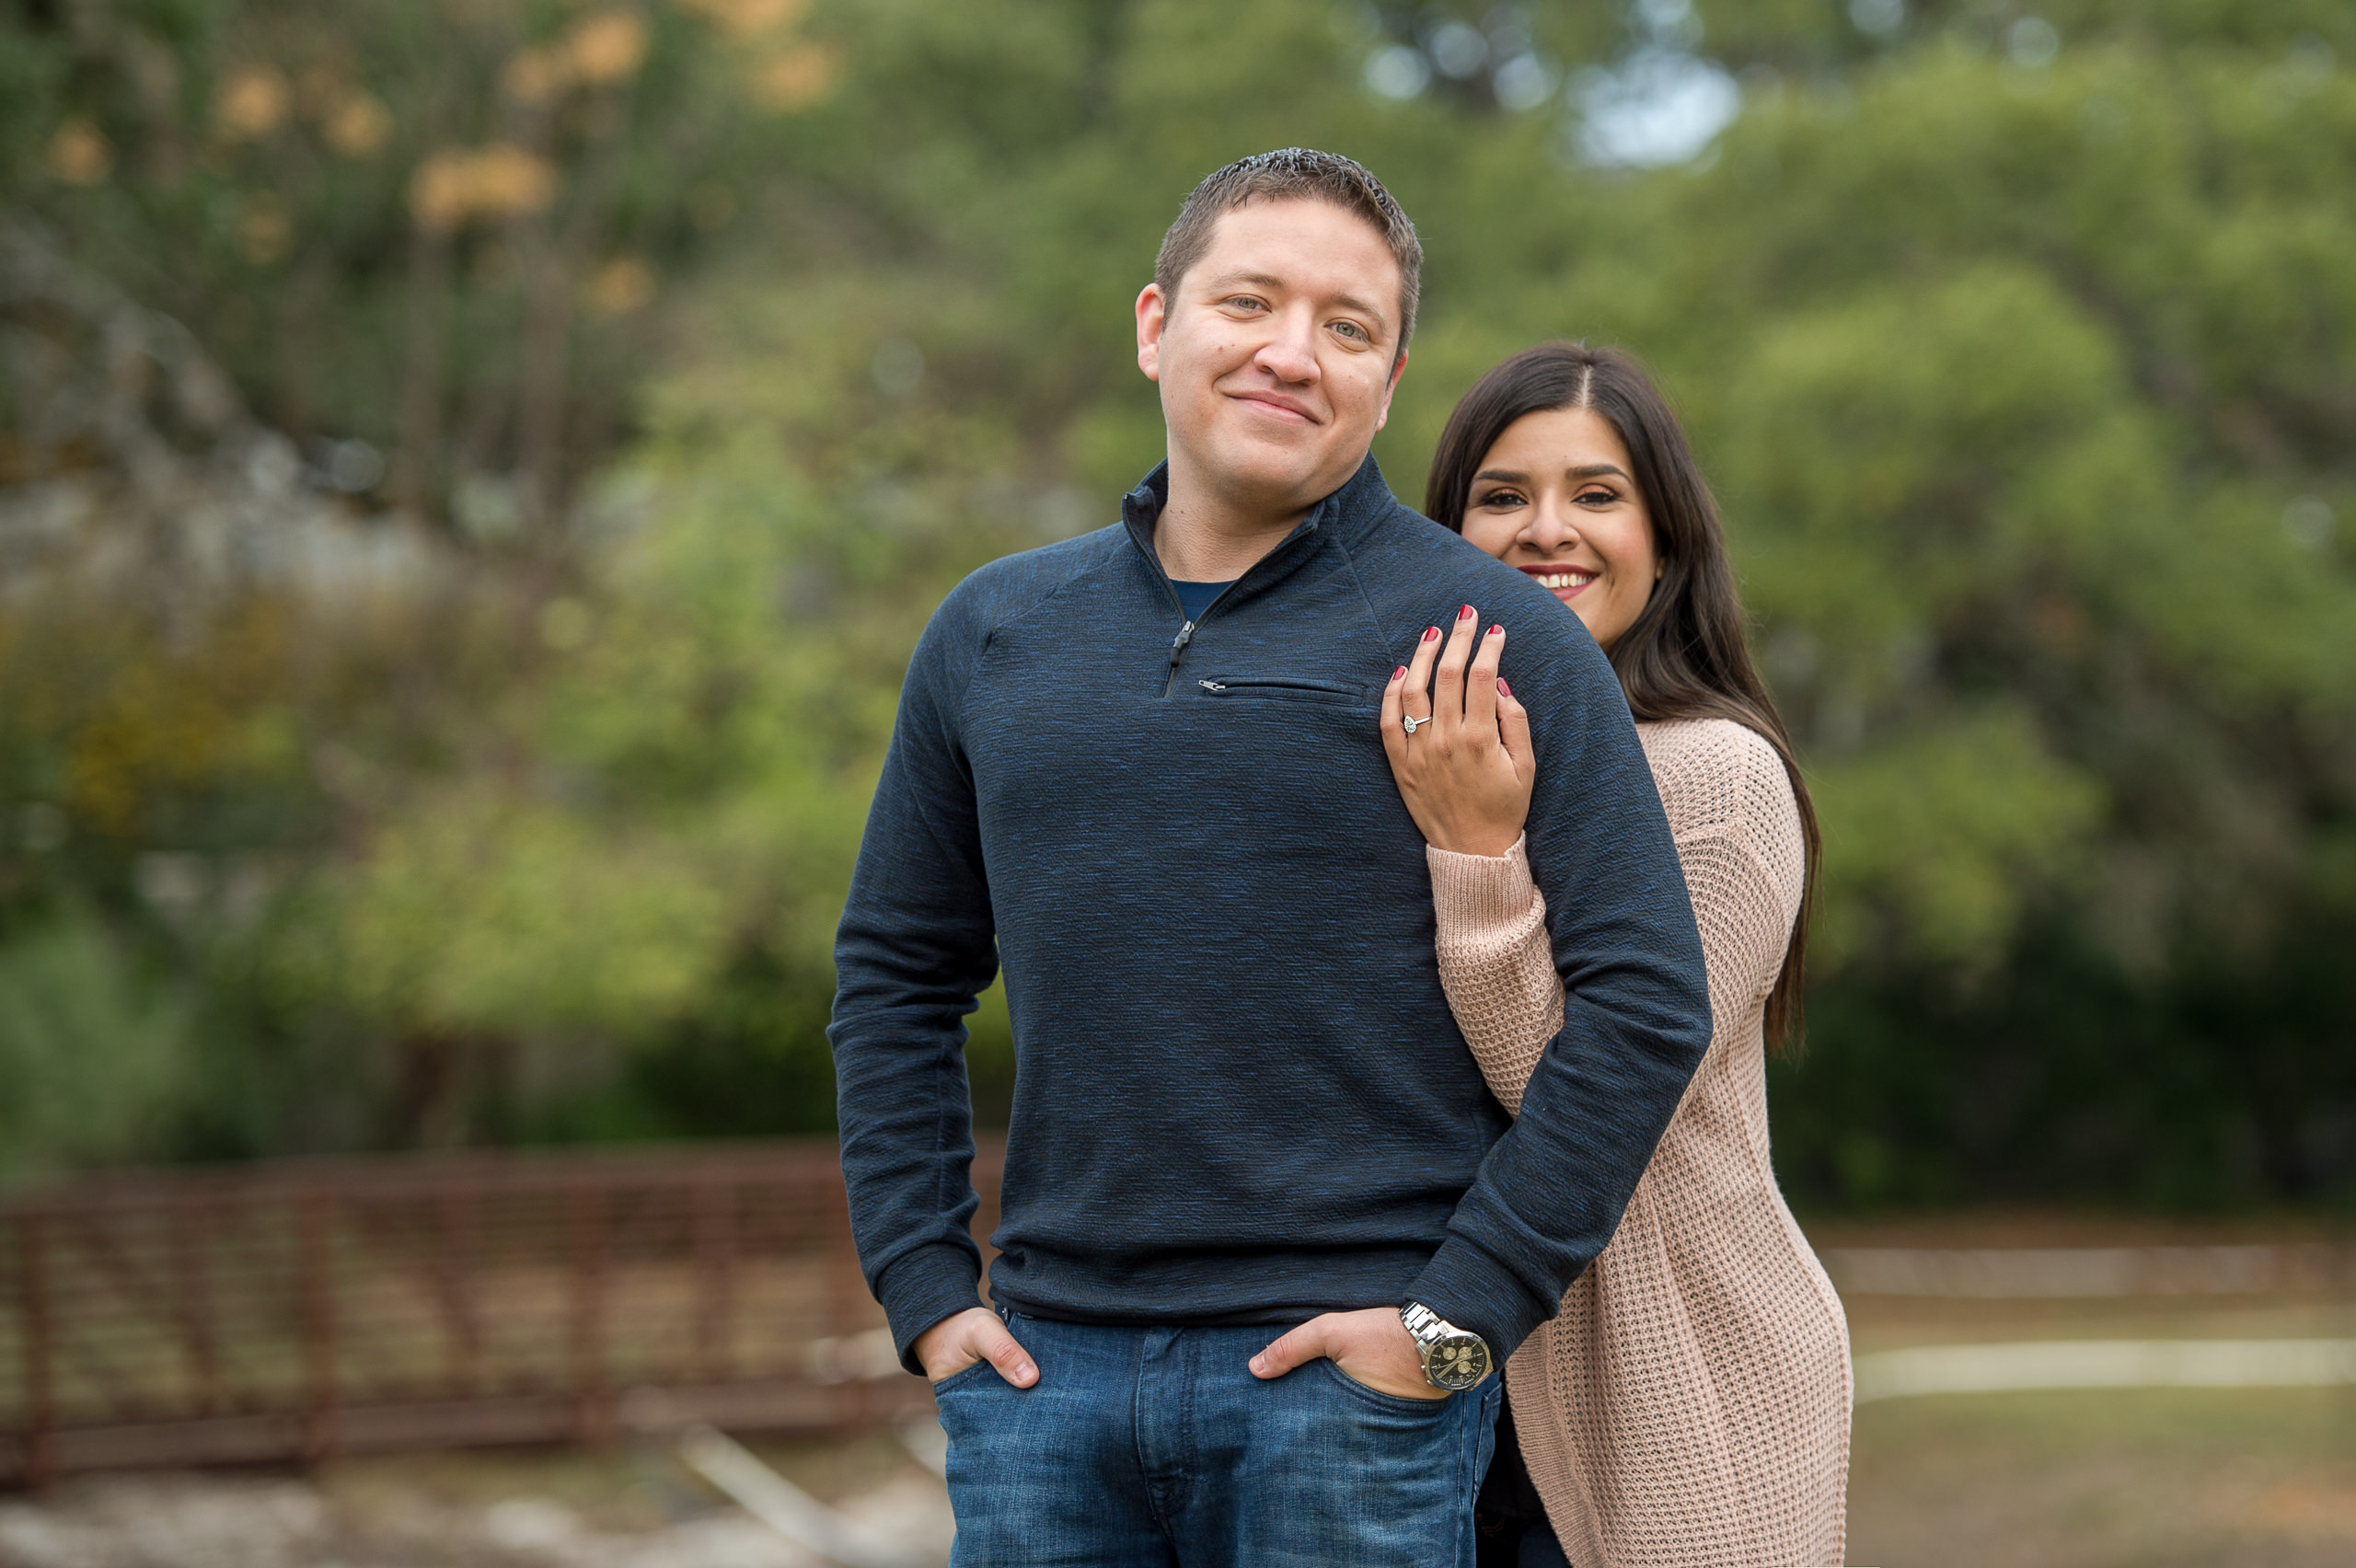 denman-estate-engagement-session-san-antonio-wedding-photographers-_4S24656-Edit